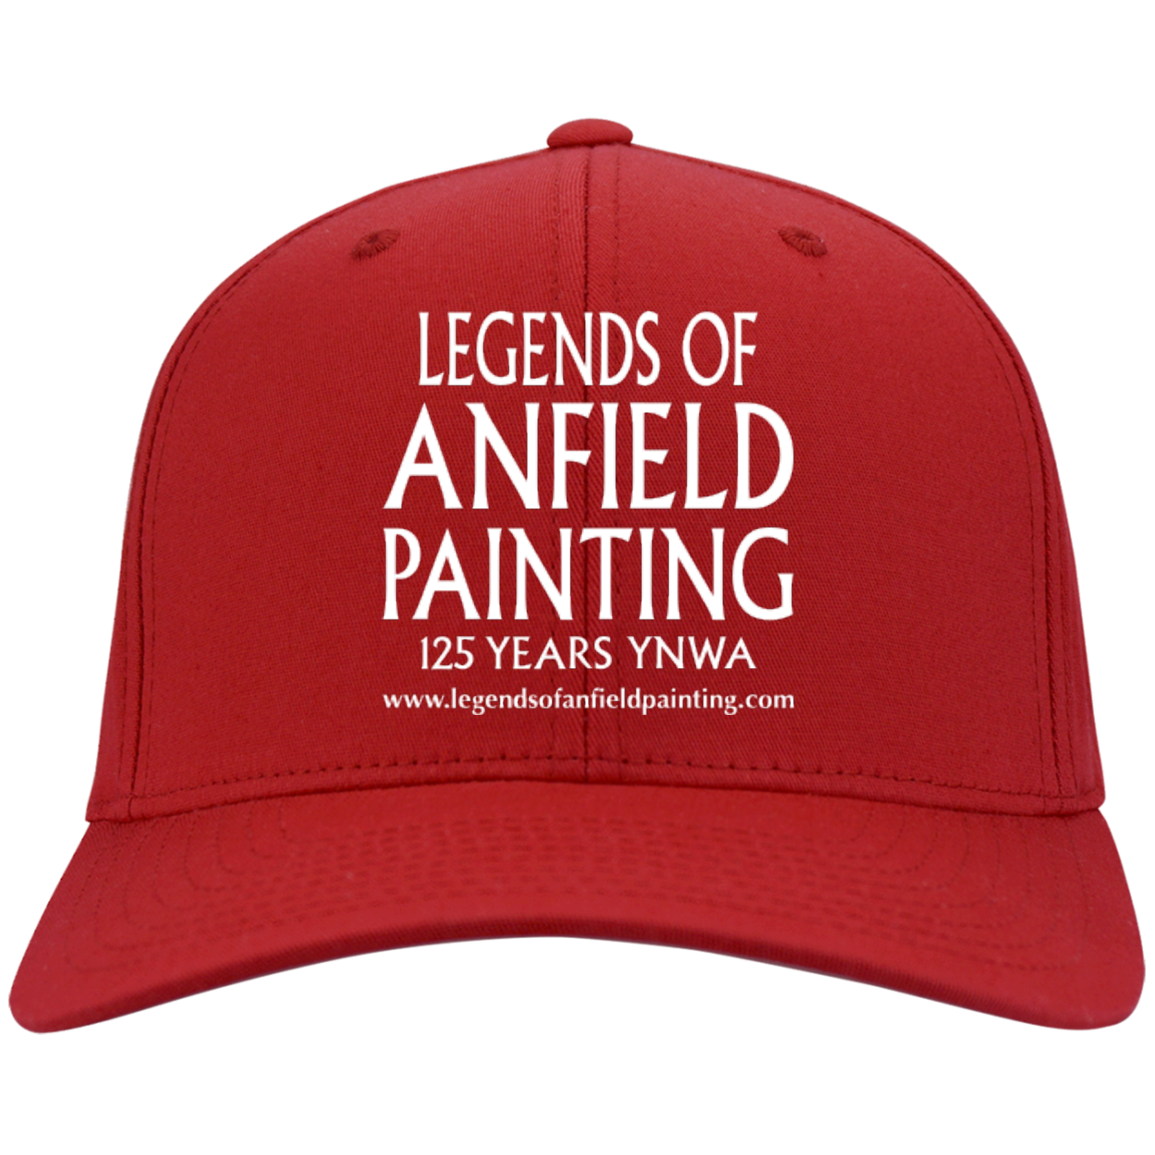 Legends Of Anfield Painting Twill Cap - Red - Legends of Anfield Painting